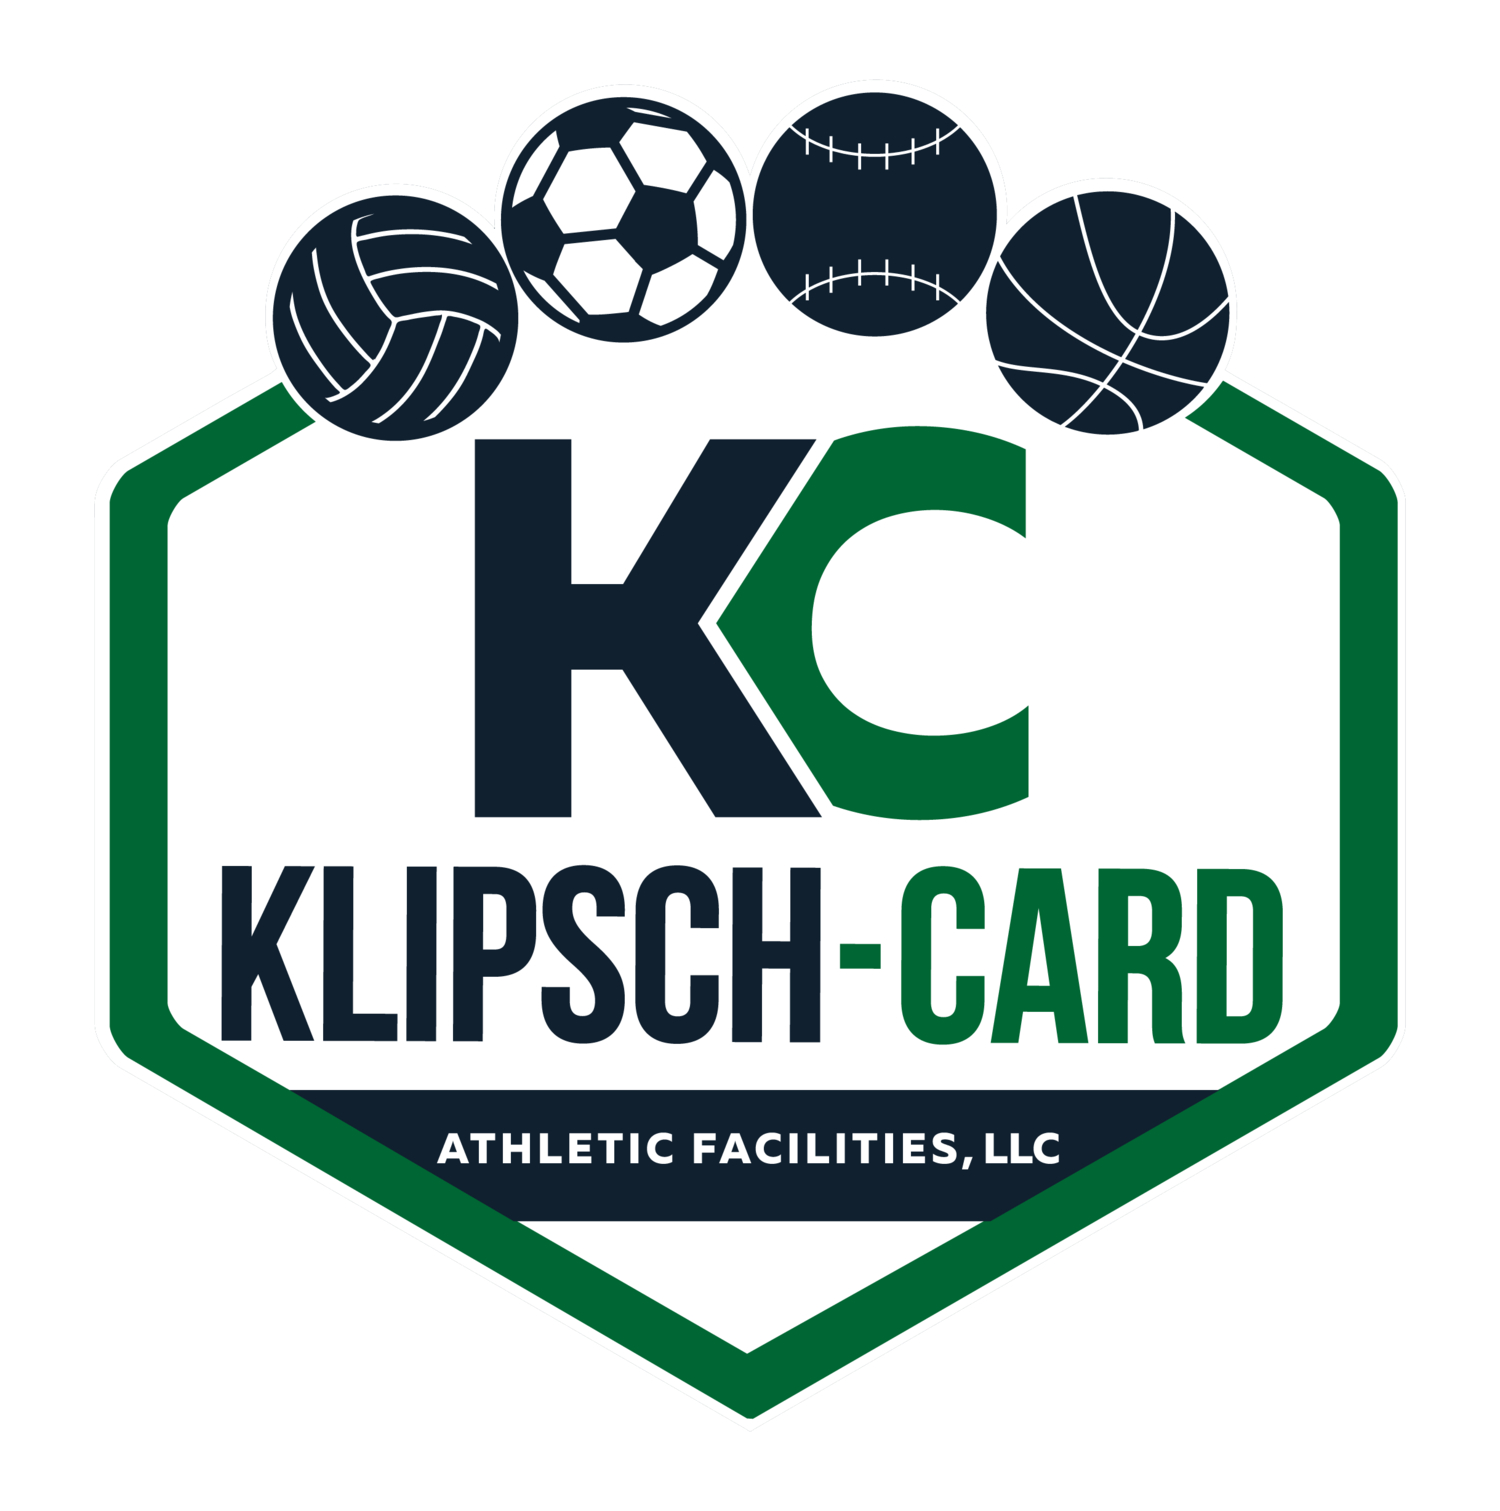 Klipsch-Card Athletic Facilities, LLC